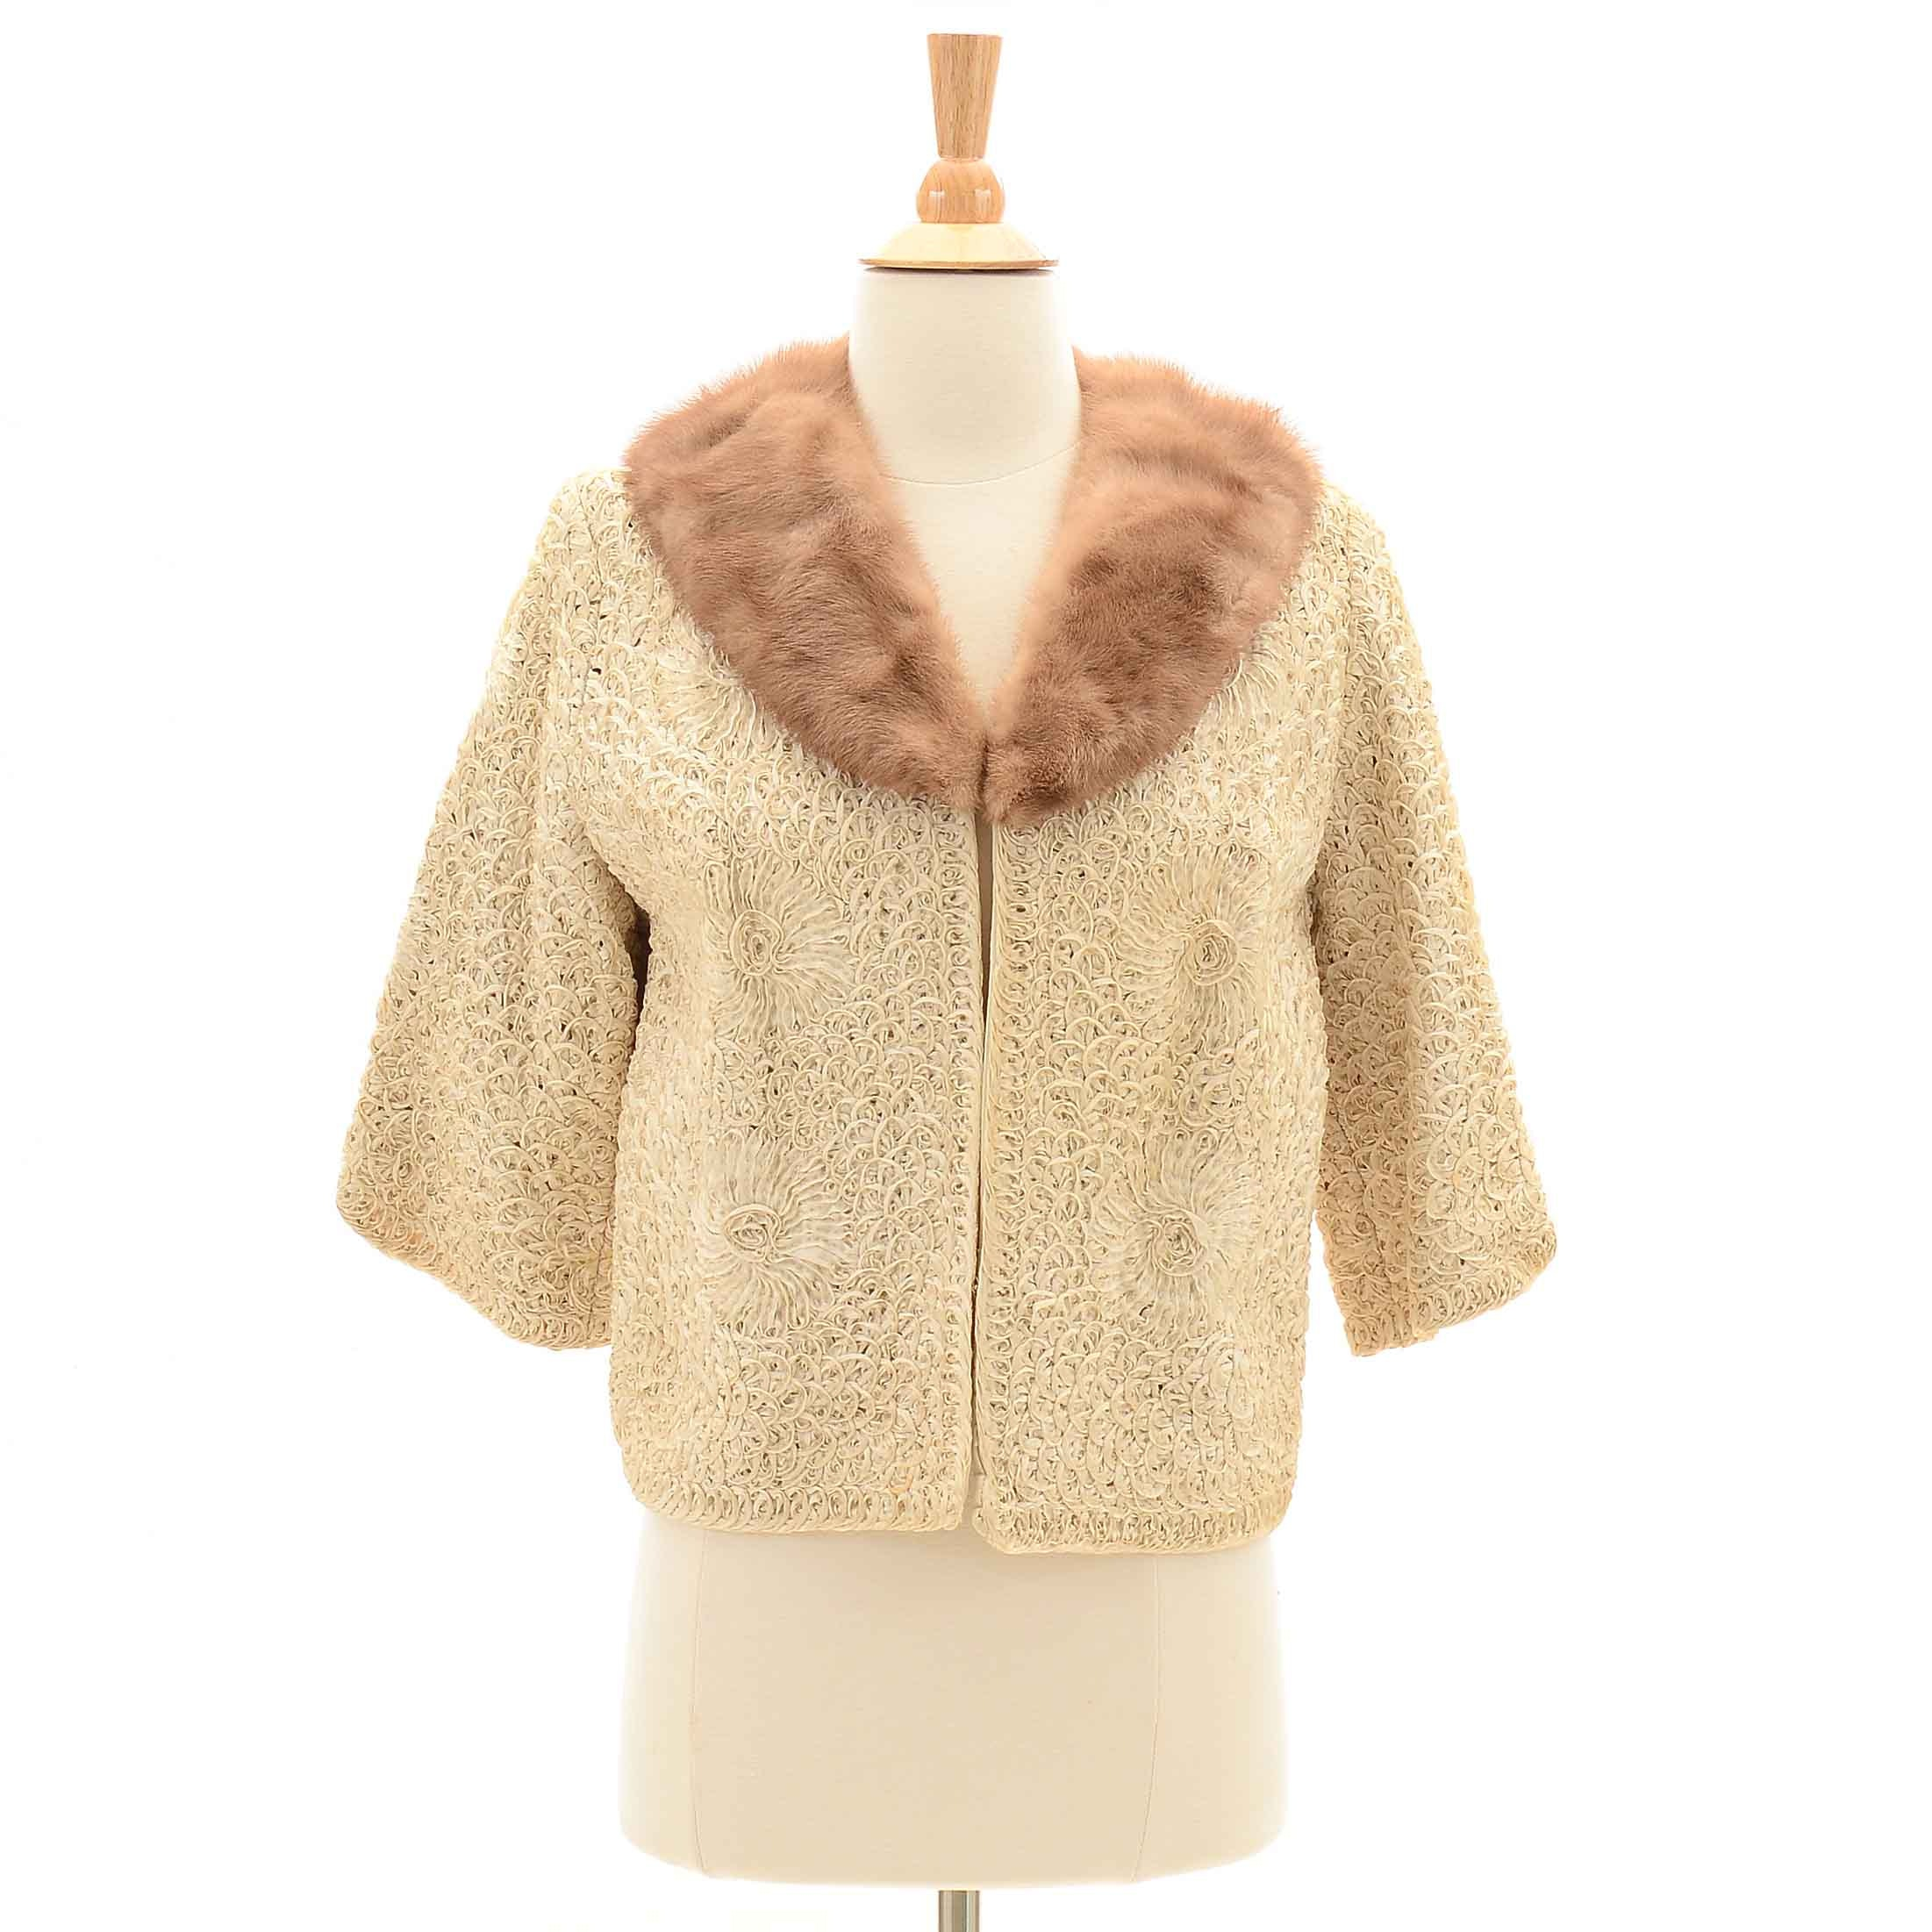 Vintage Ribbon Work Jacket with Mink Collar